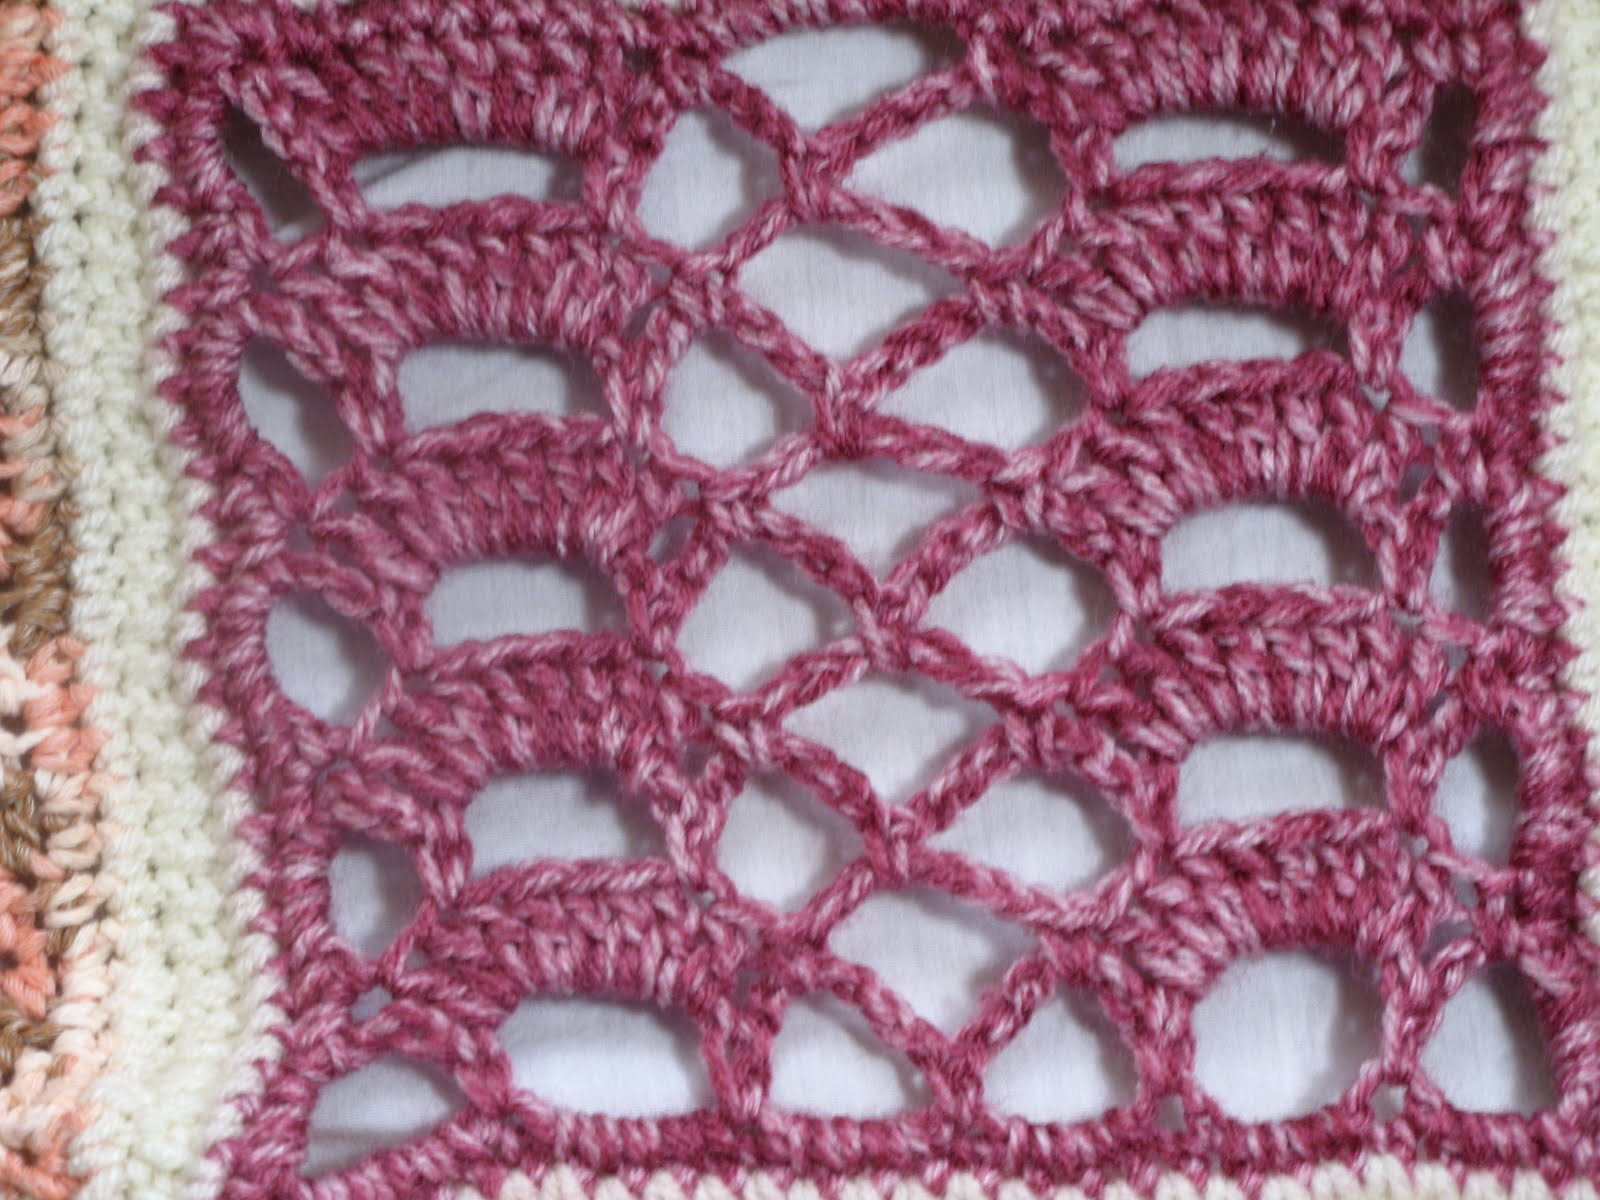 How to Crochet - Tunisian crochet stitch or Afghan stitch